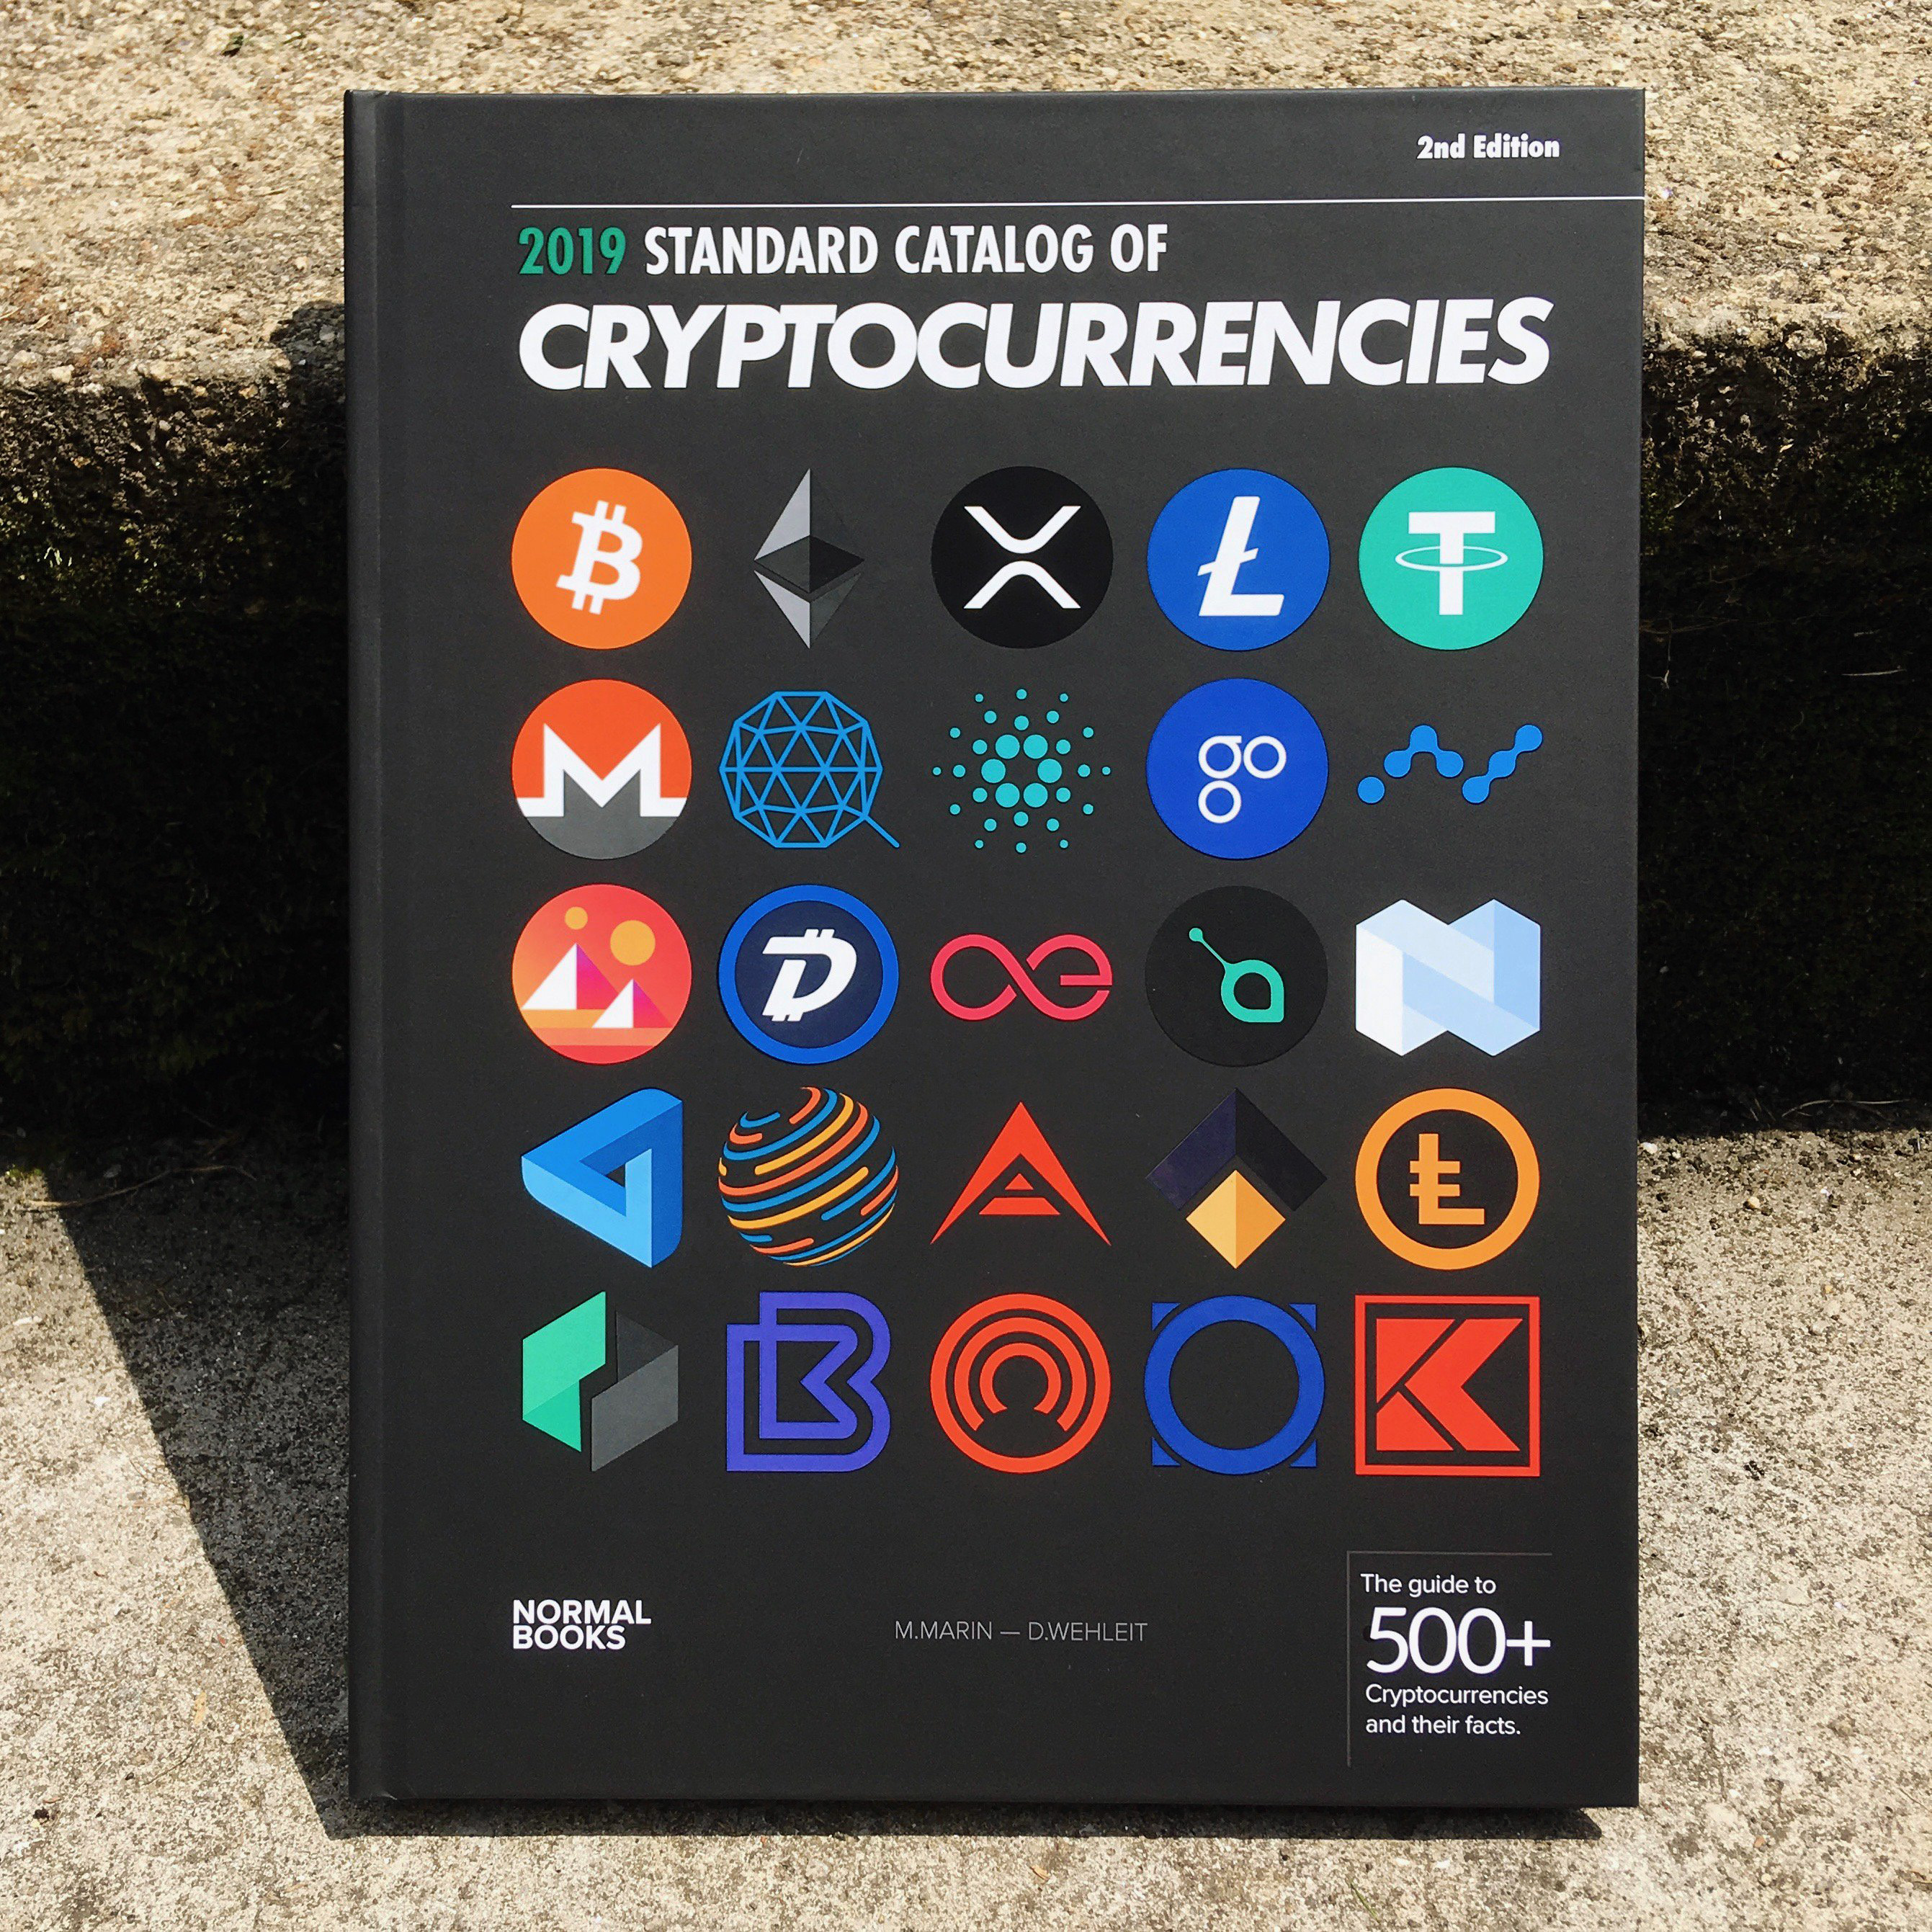 The 2019 Edition of the Cryptocurrencies Catalog is getting shipped worldwide